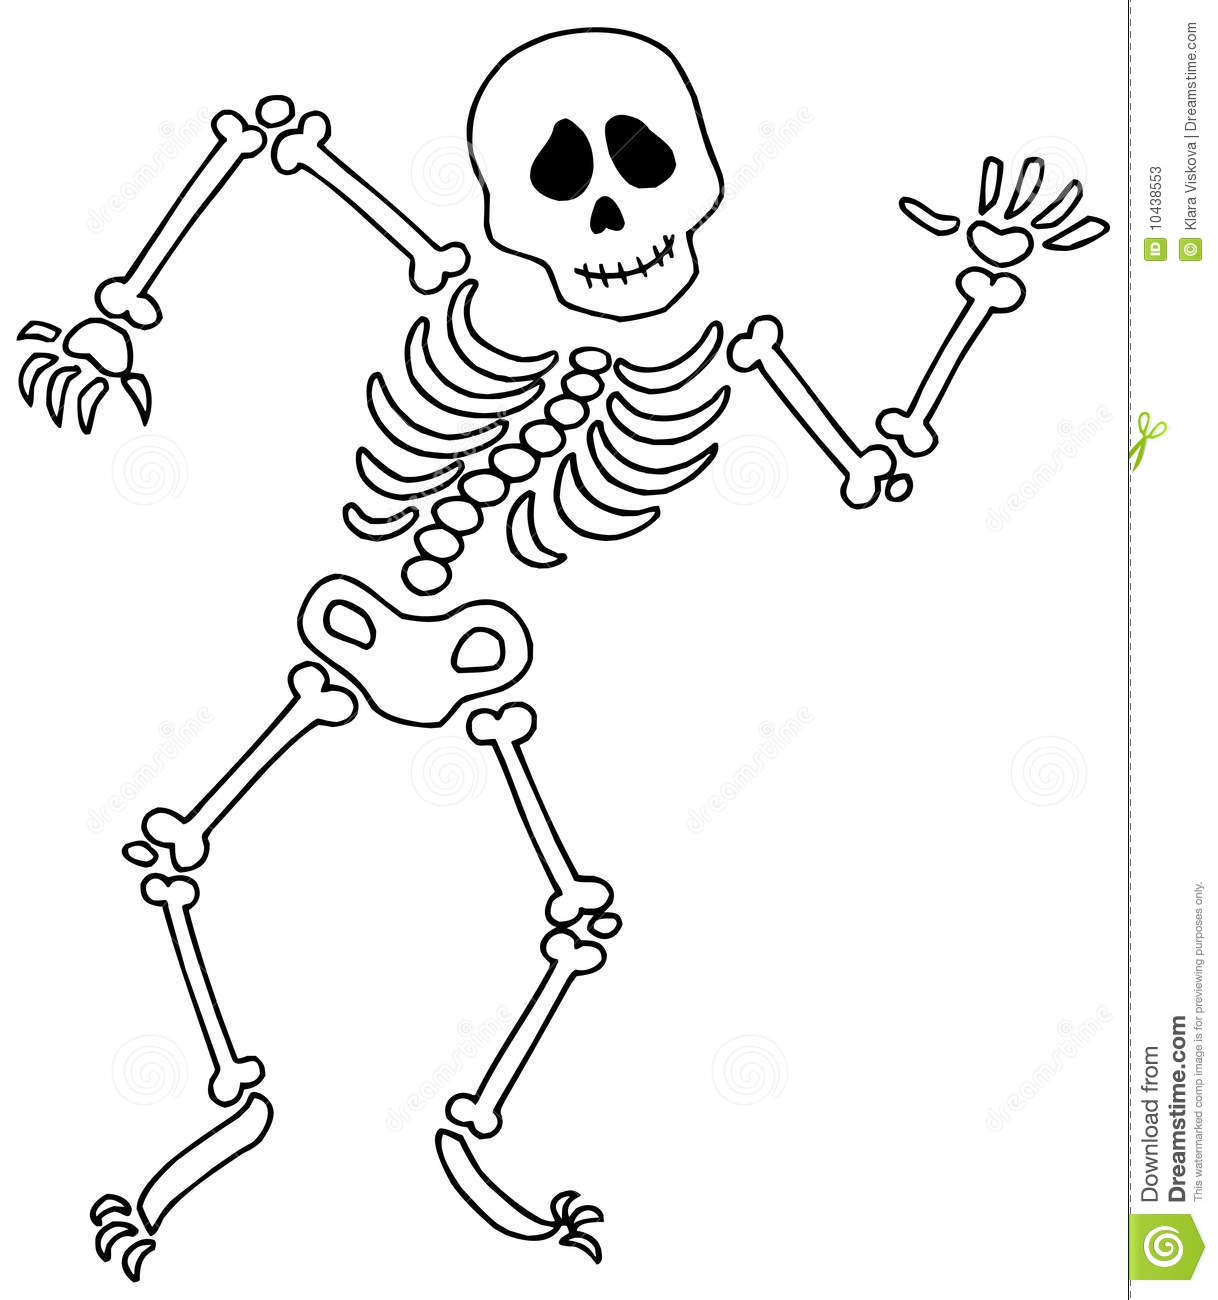 Sleleton clipart Drawings Skeleton clipart Download Download